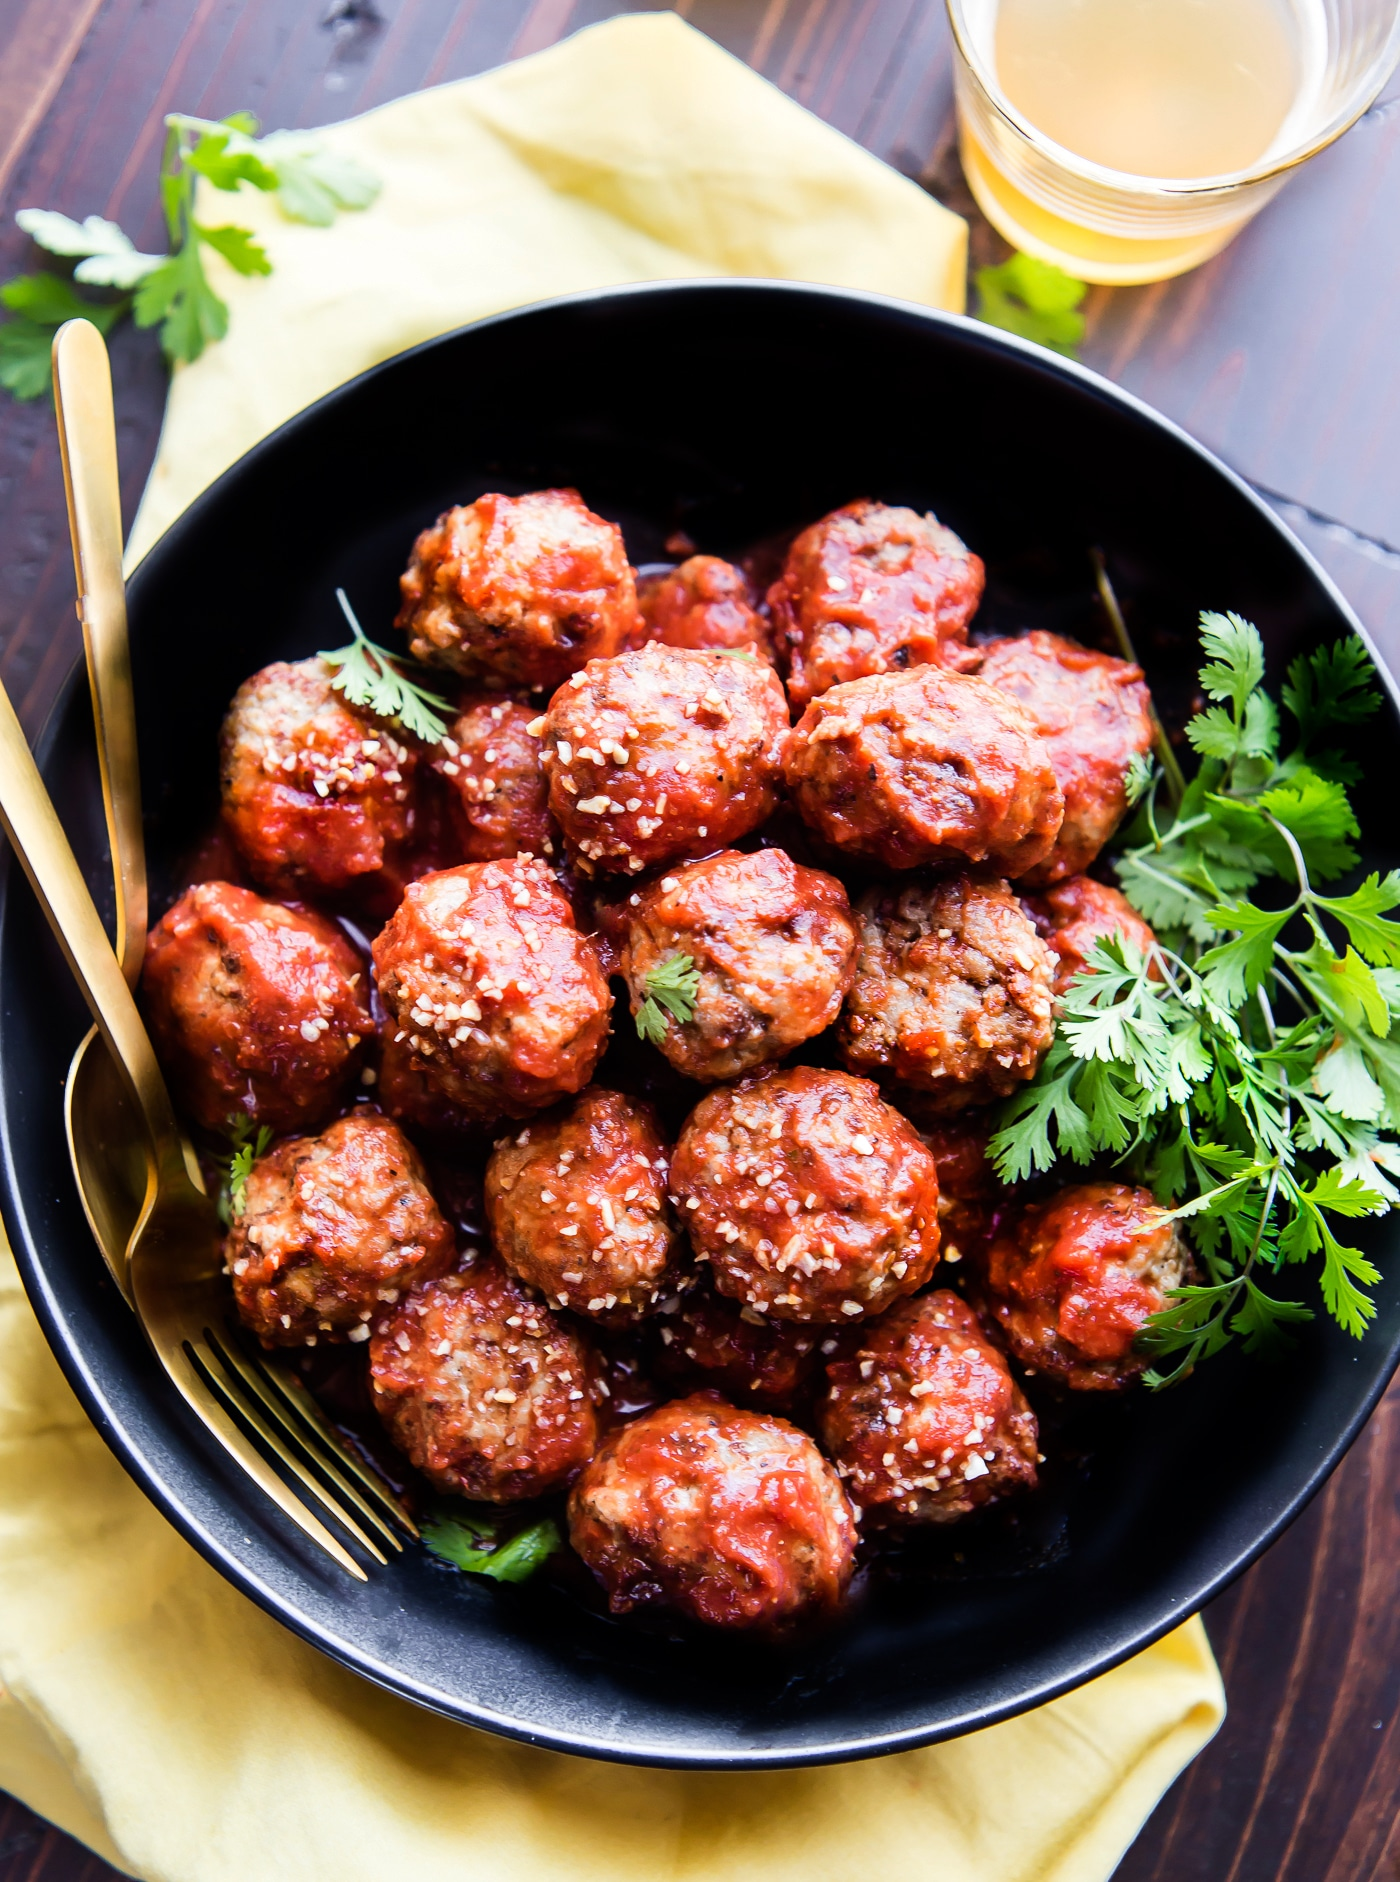 Paleo Meatballs with a sweet Sriracha sauce! These sweet and spicy Paleo meatballs are easy to make in under 45 minutes. Simple ingredients, super tasty, and protein packed! Great as an appetizer, meal, or meal prep addition. Freezer friendly, whole30 friendly!